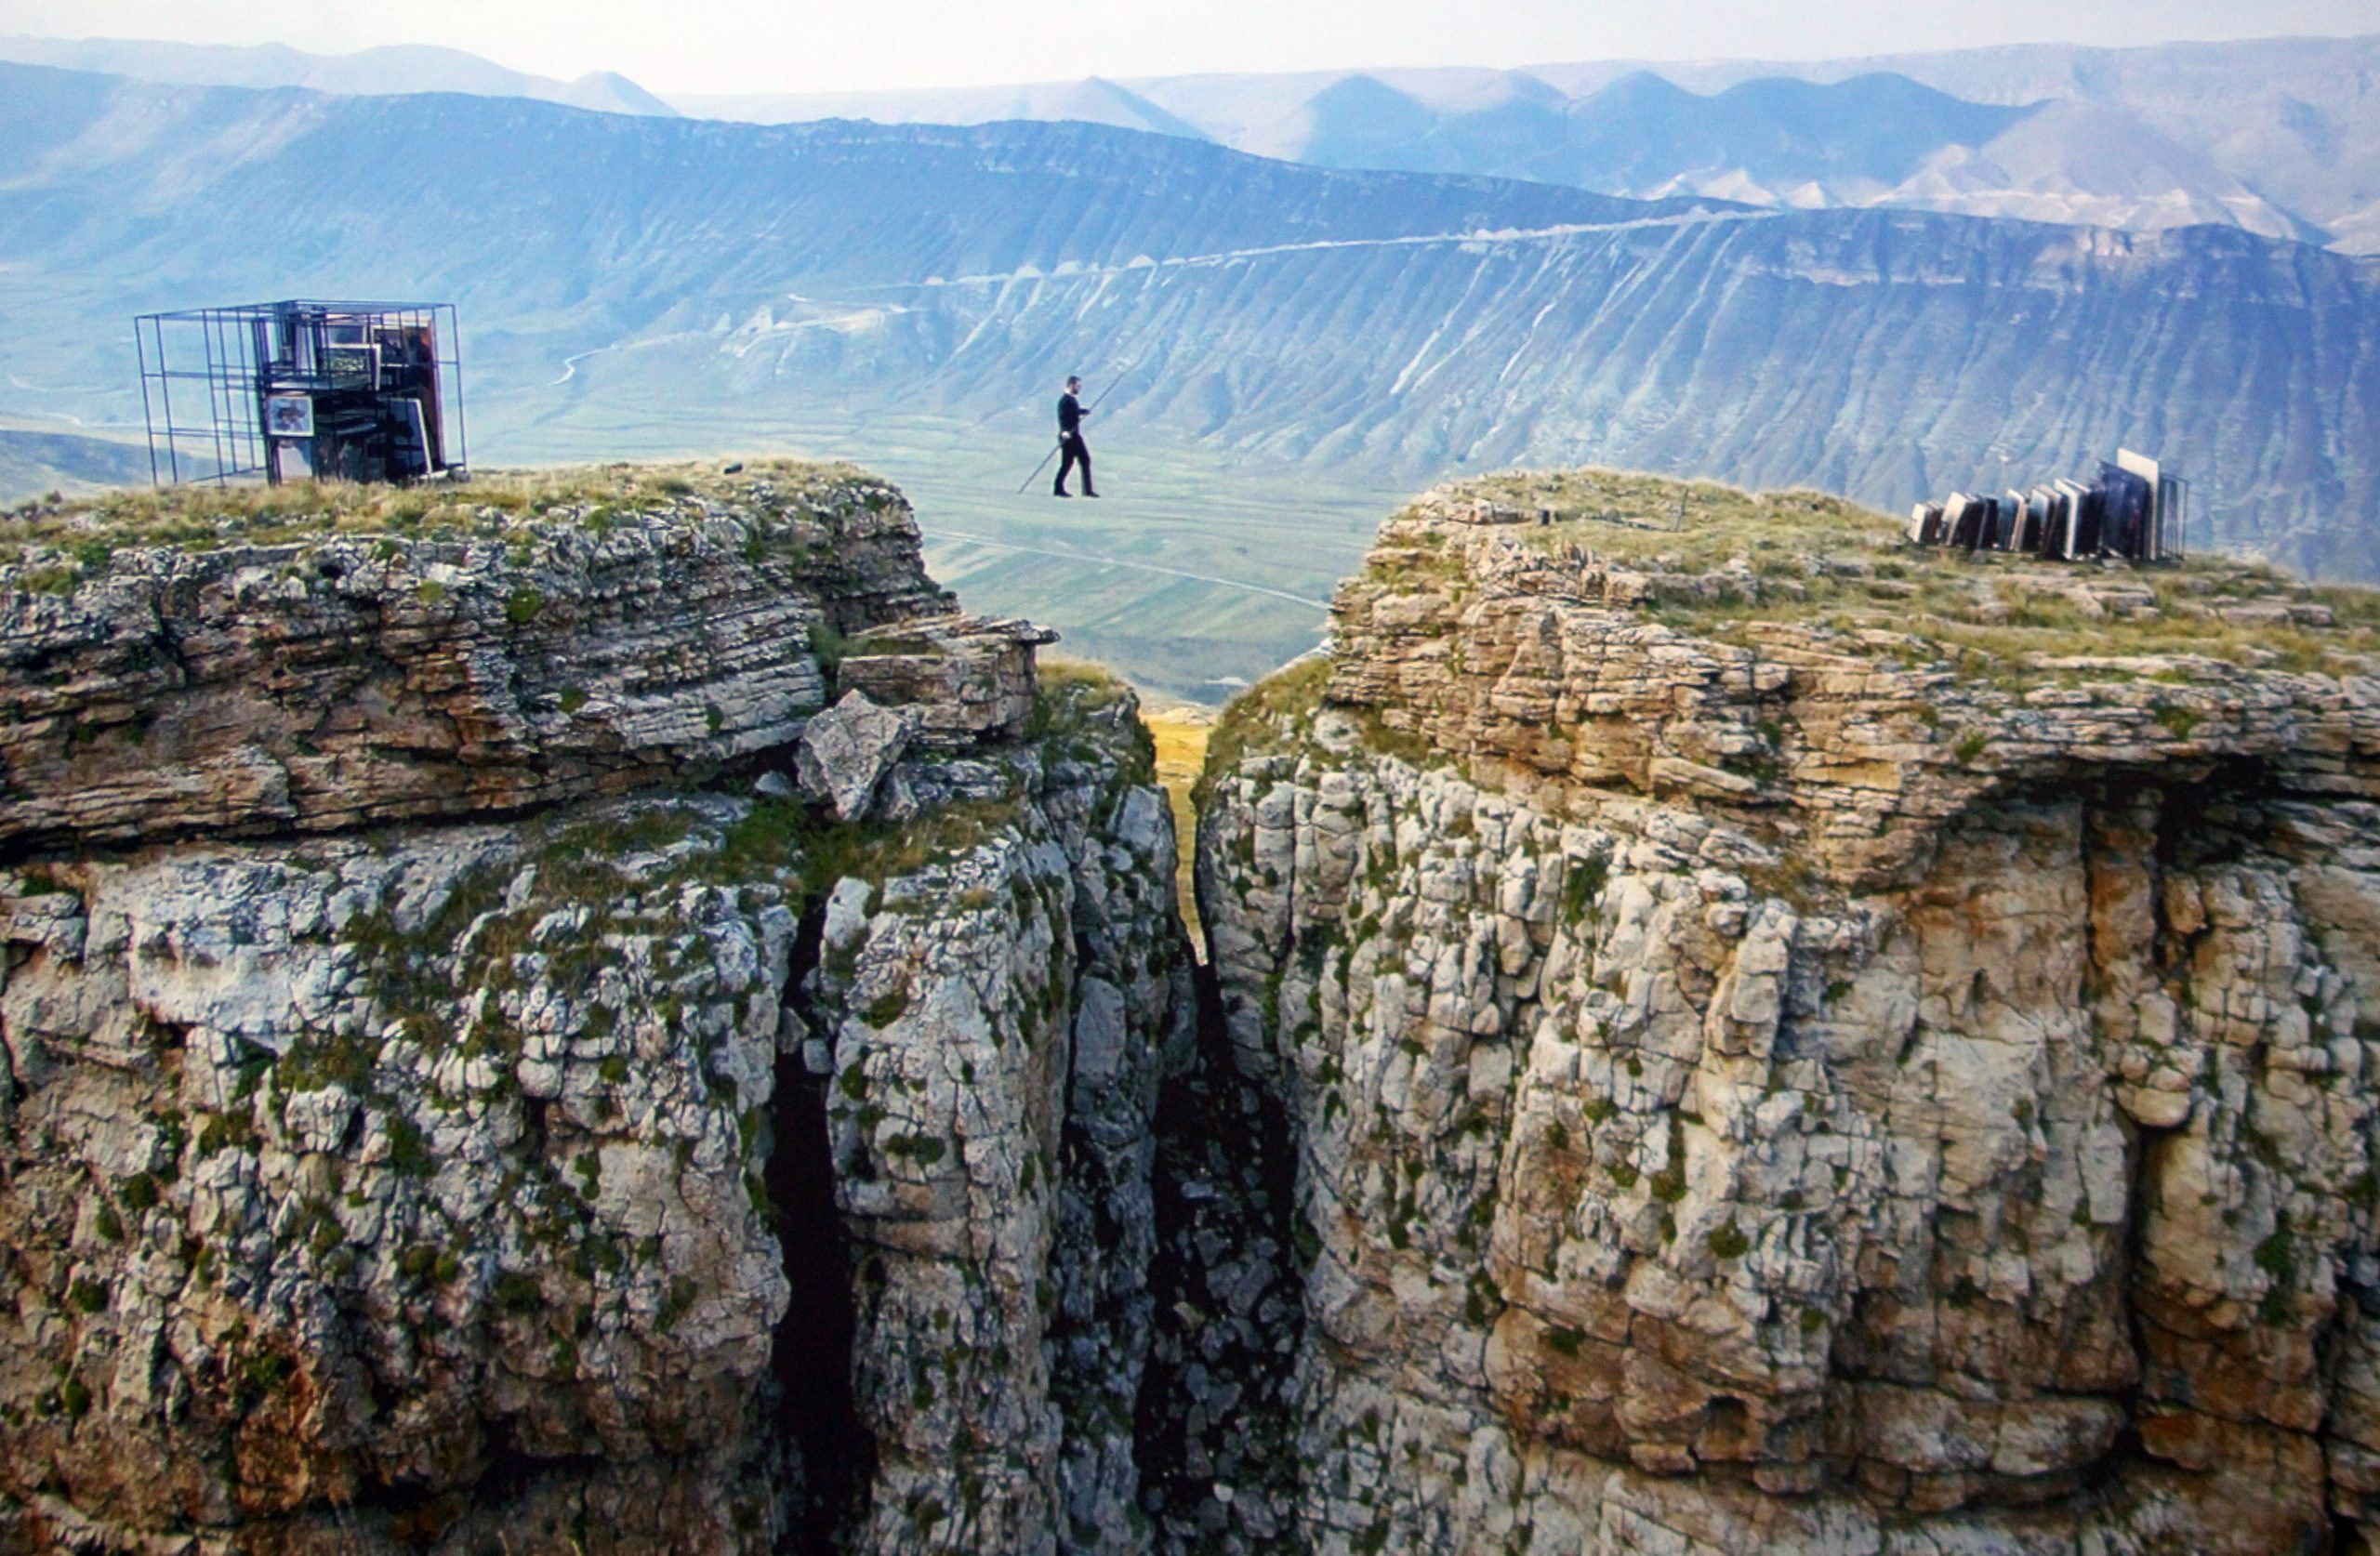 The film Tightrope, by Russian artist Taus Makhacheva, shows Rasul Abakarov crossing a canyon carrying 61 works from the Dagestani Museum of Fine Art.